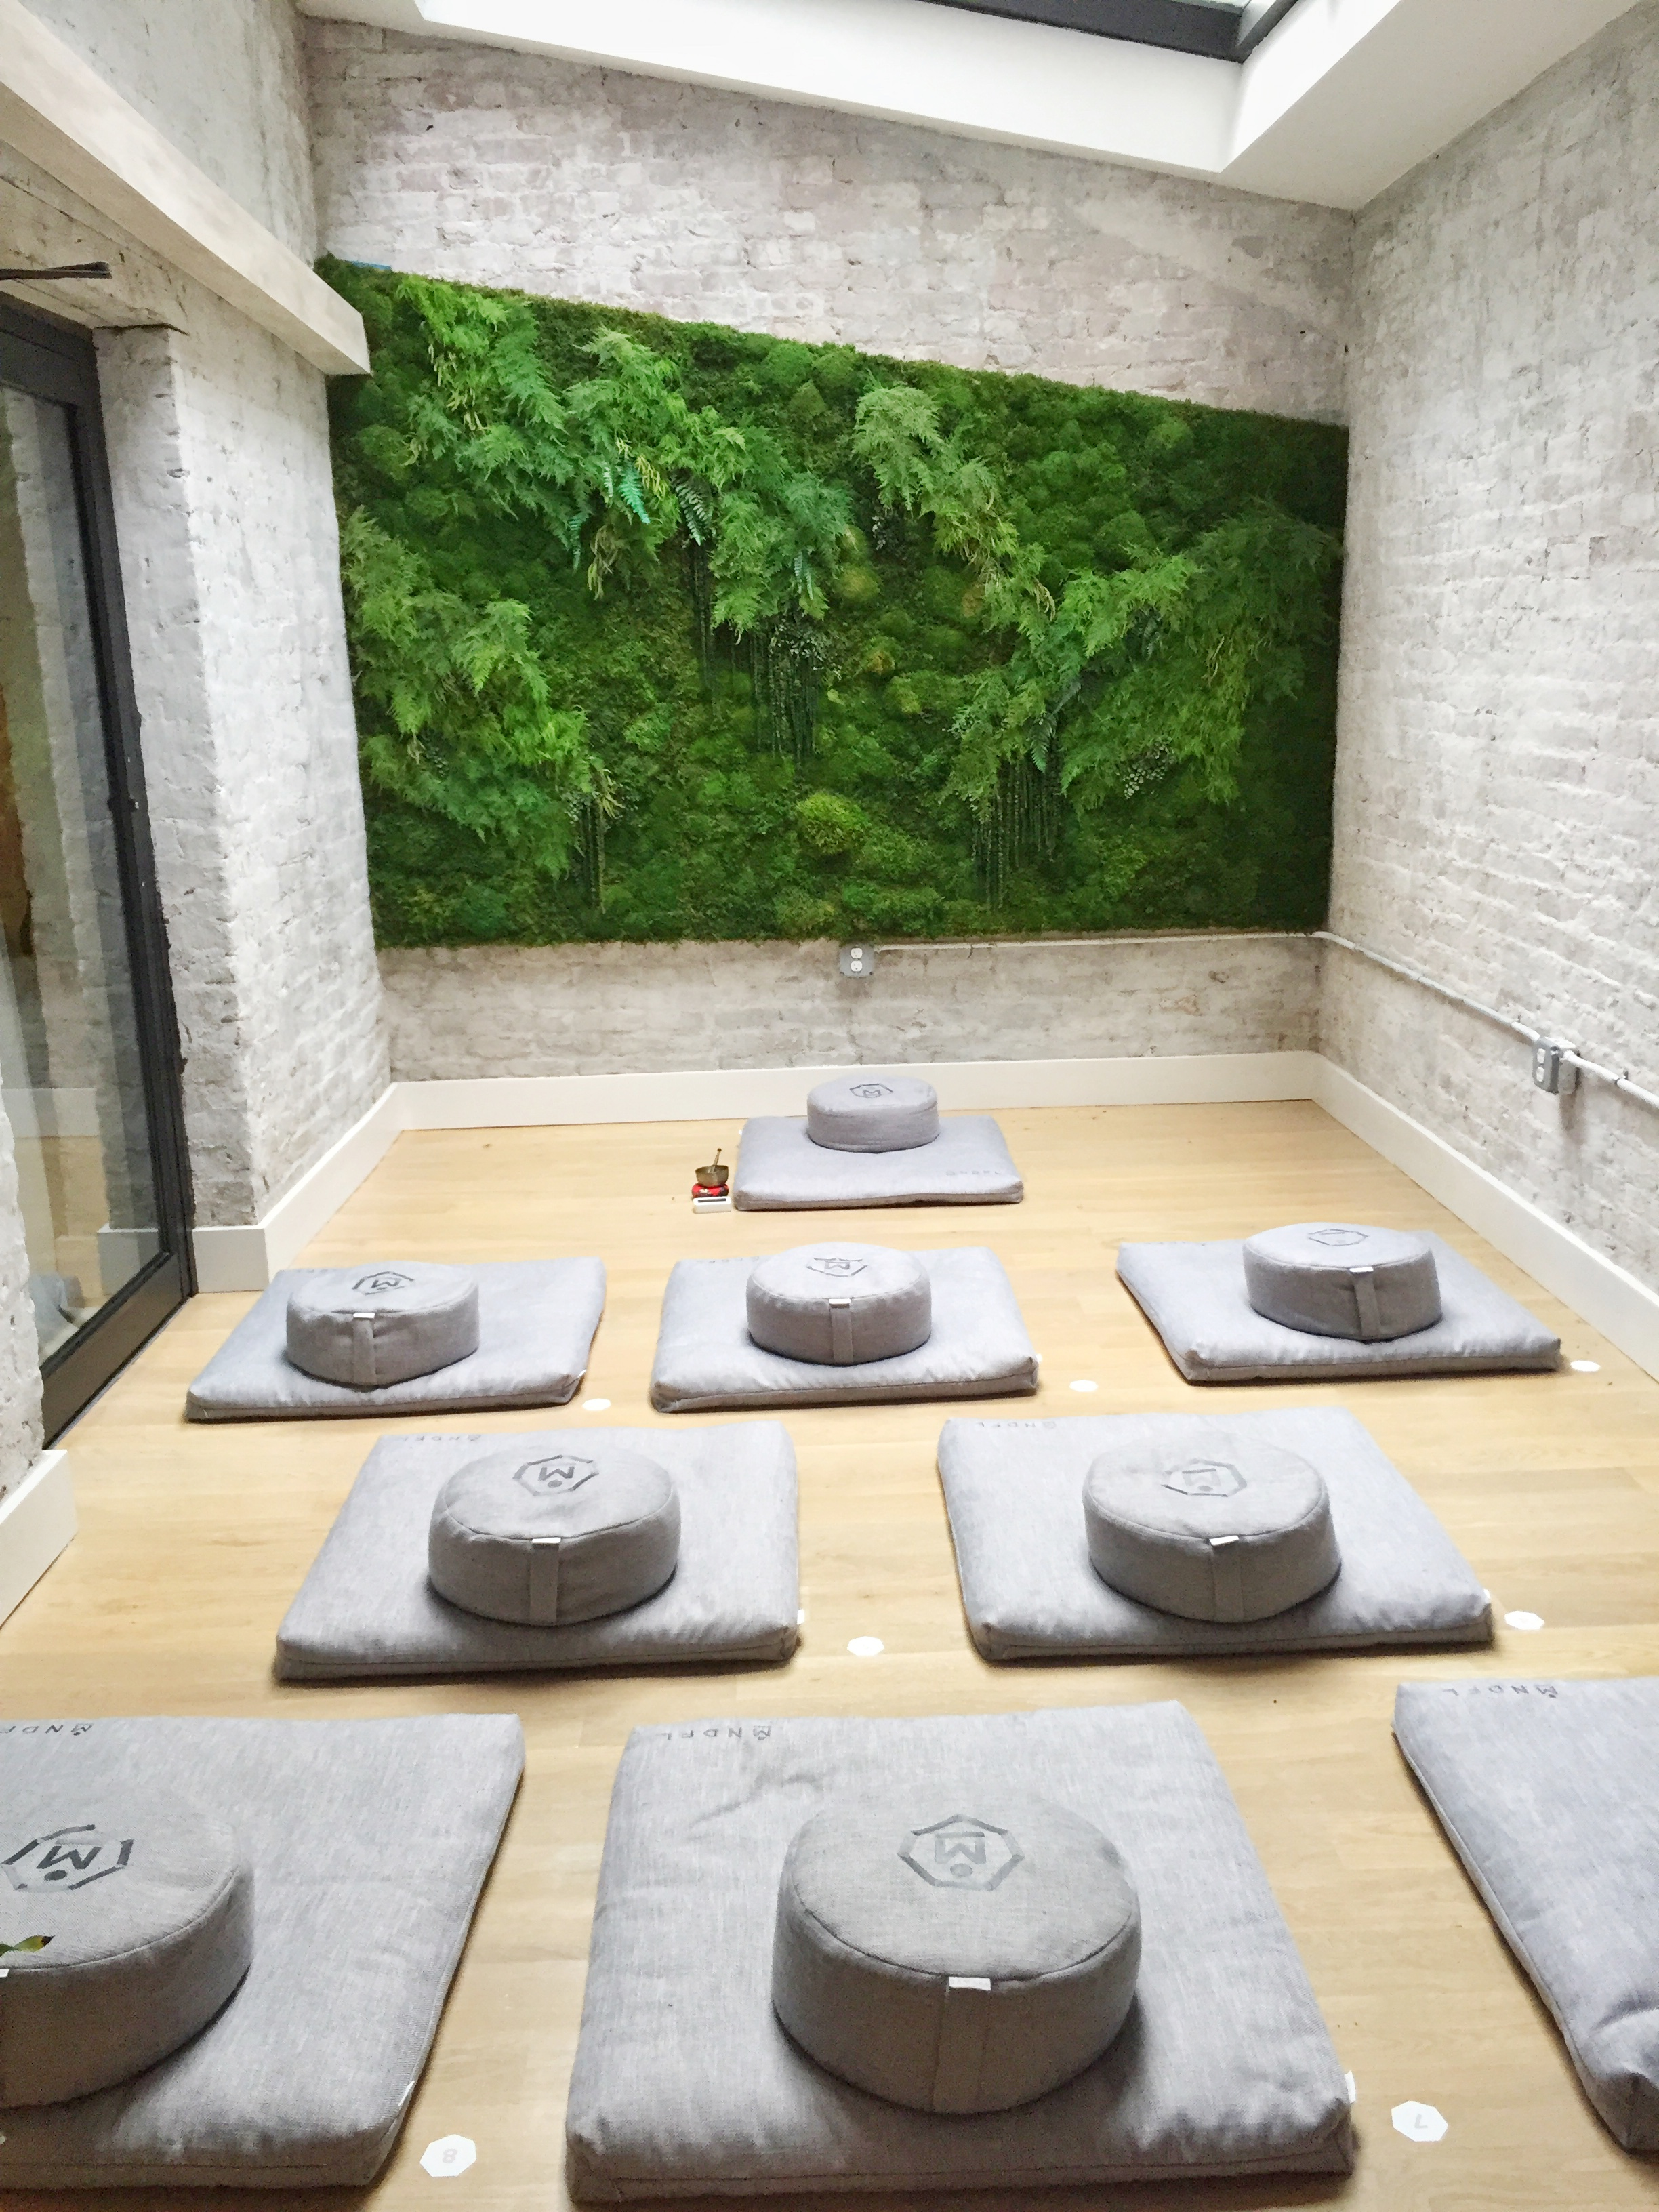 private self guided meditation room- the room for guided class is larger